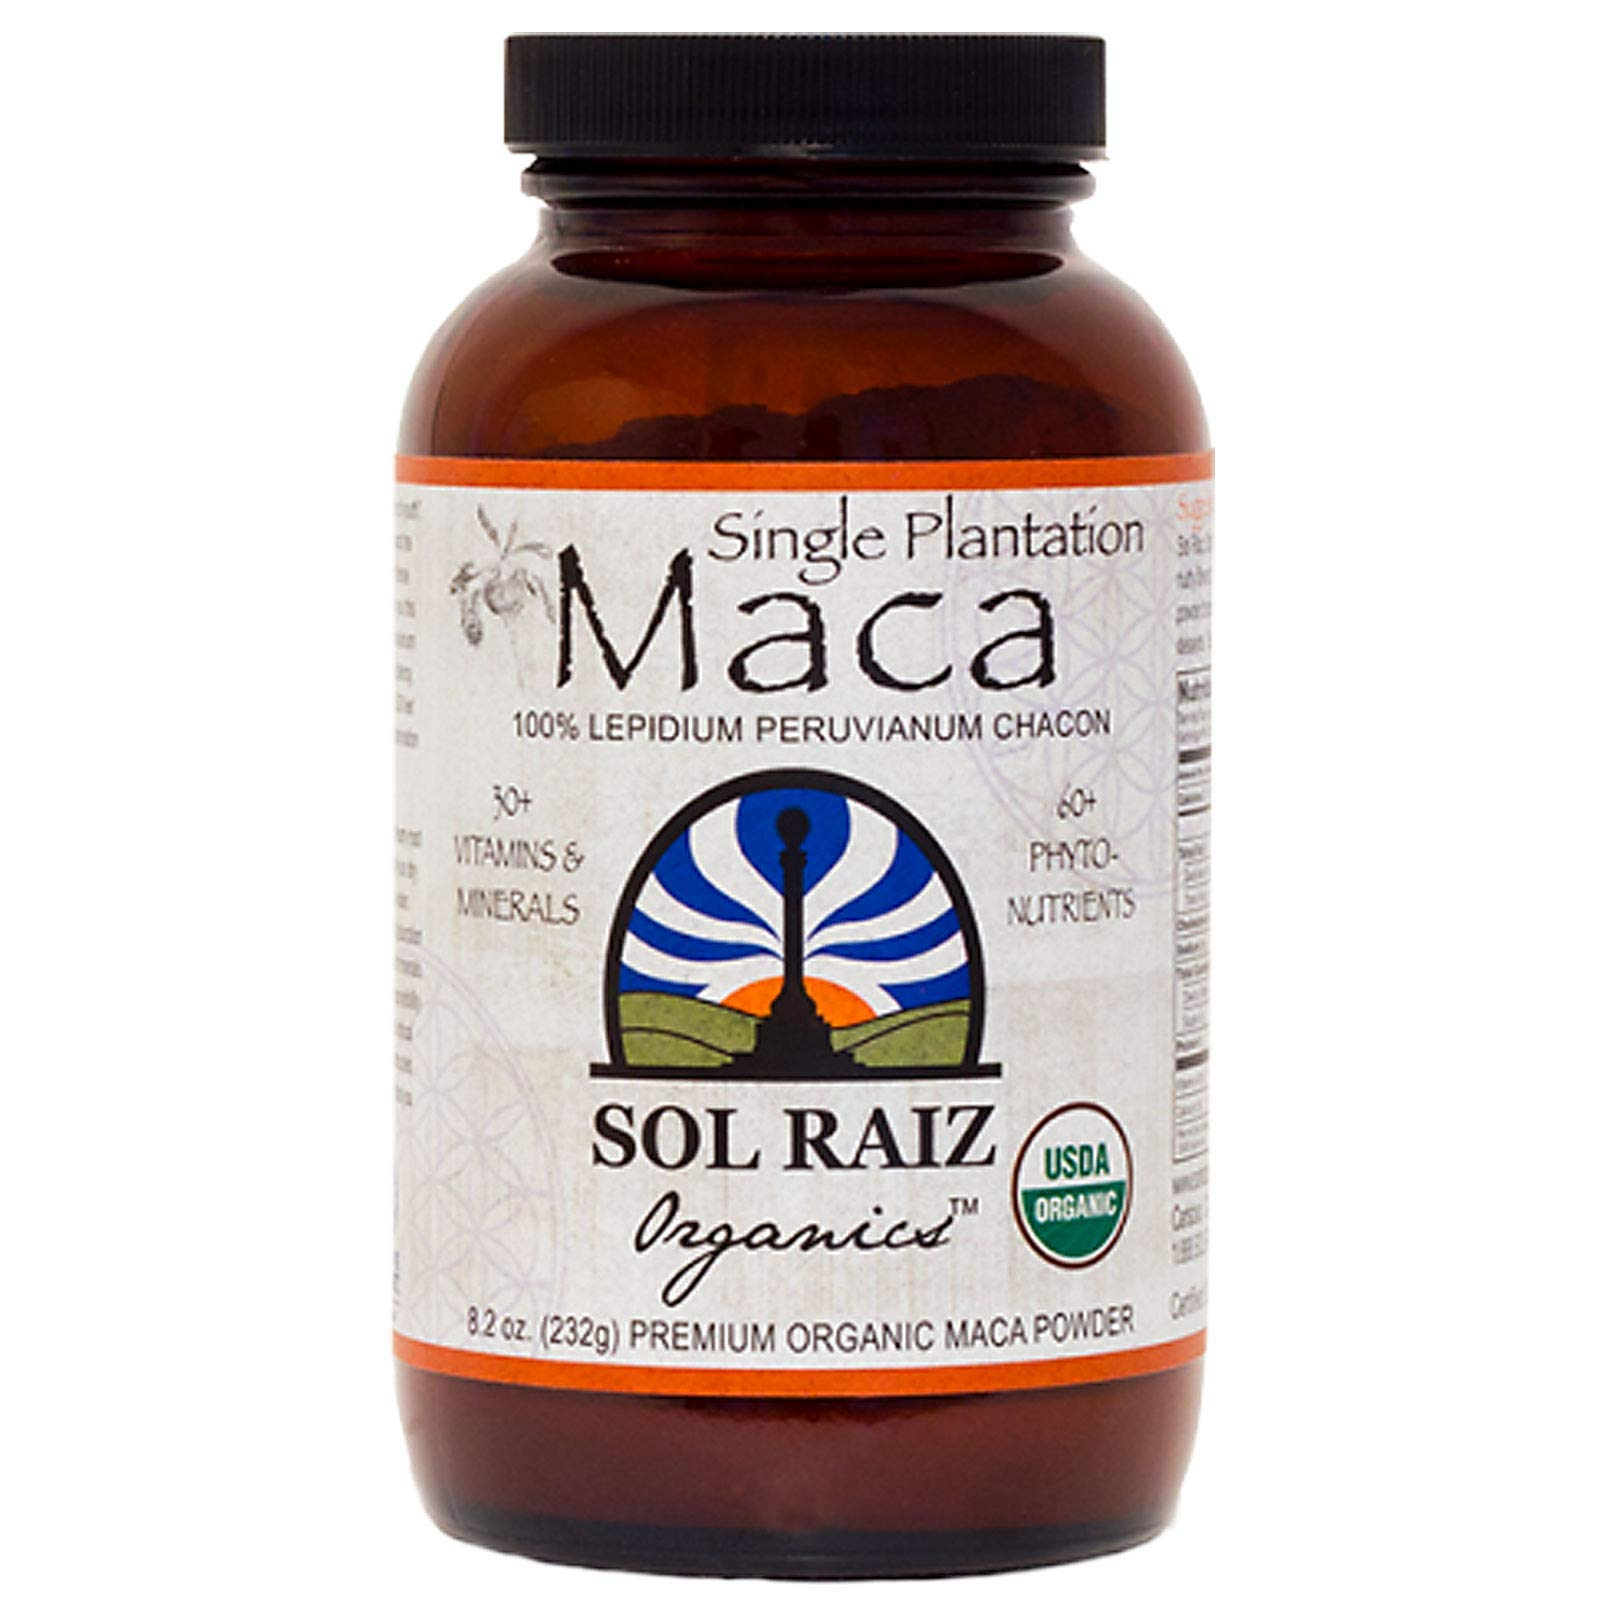 Amazon.com: SOL RAIZ ORGANICS Sol Raizs Maca Powder, 8.2 OZ: Health & Personal Care